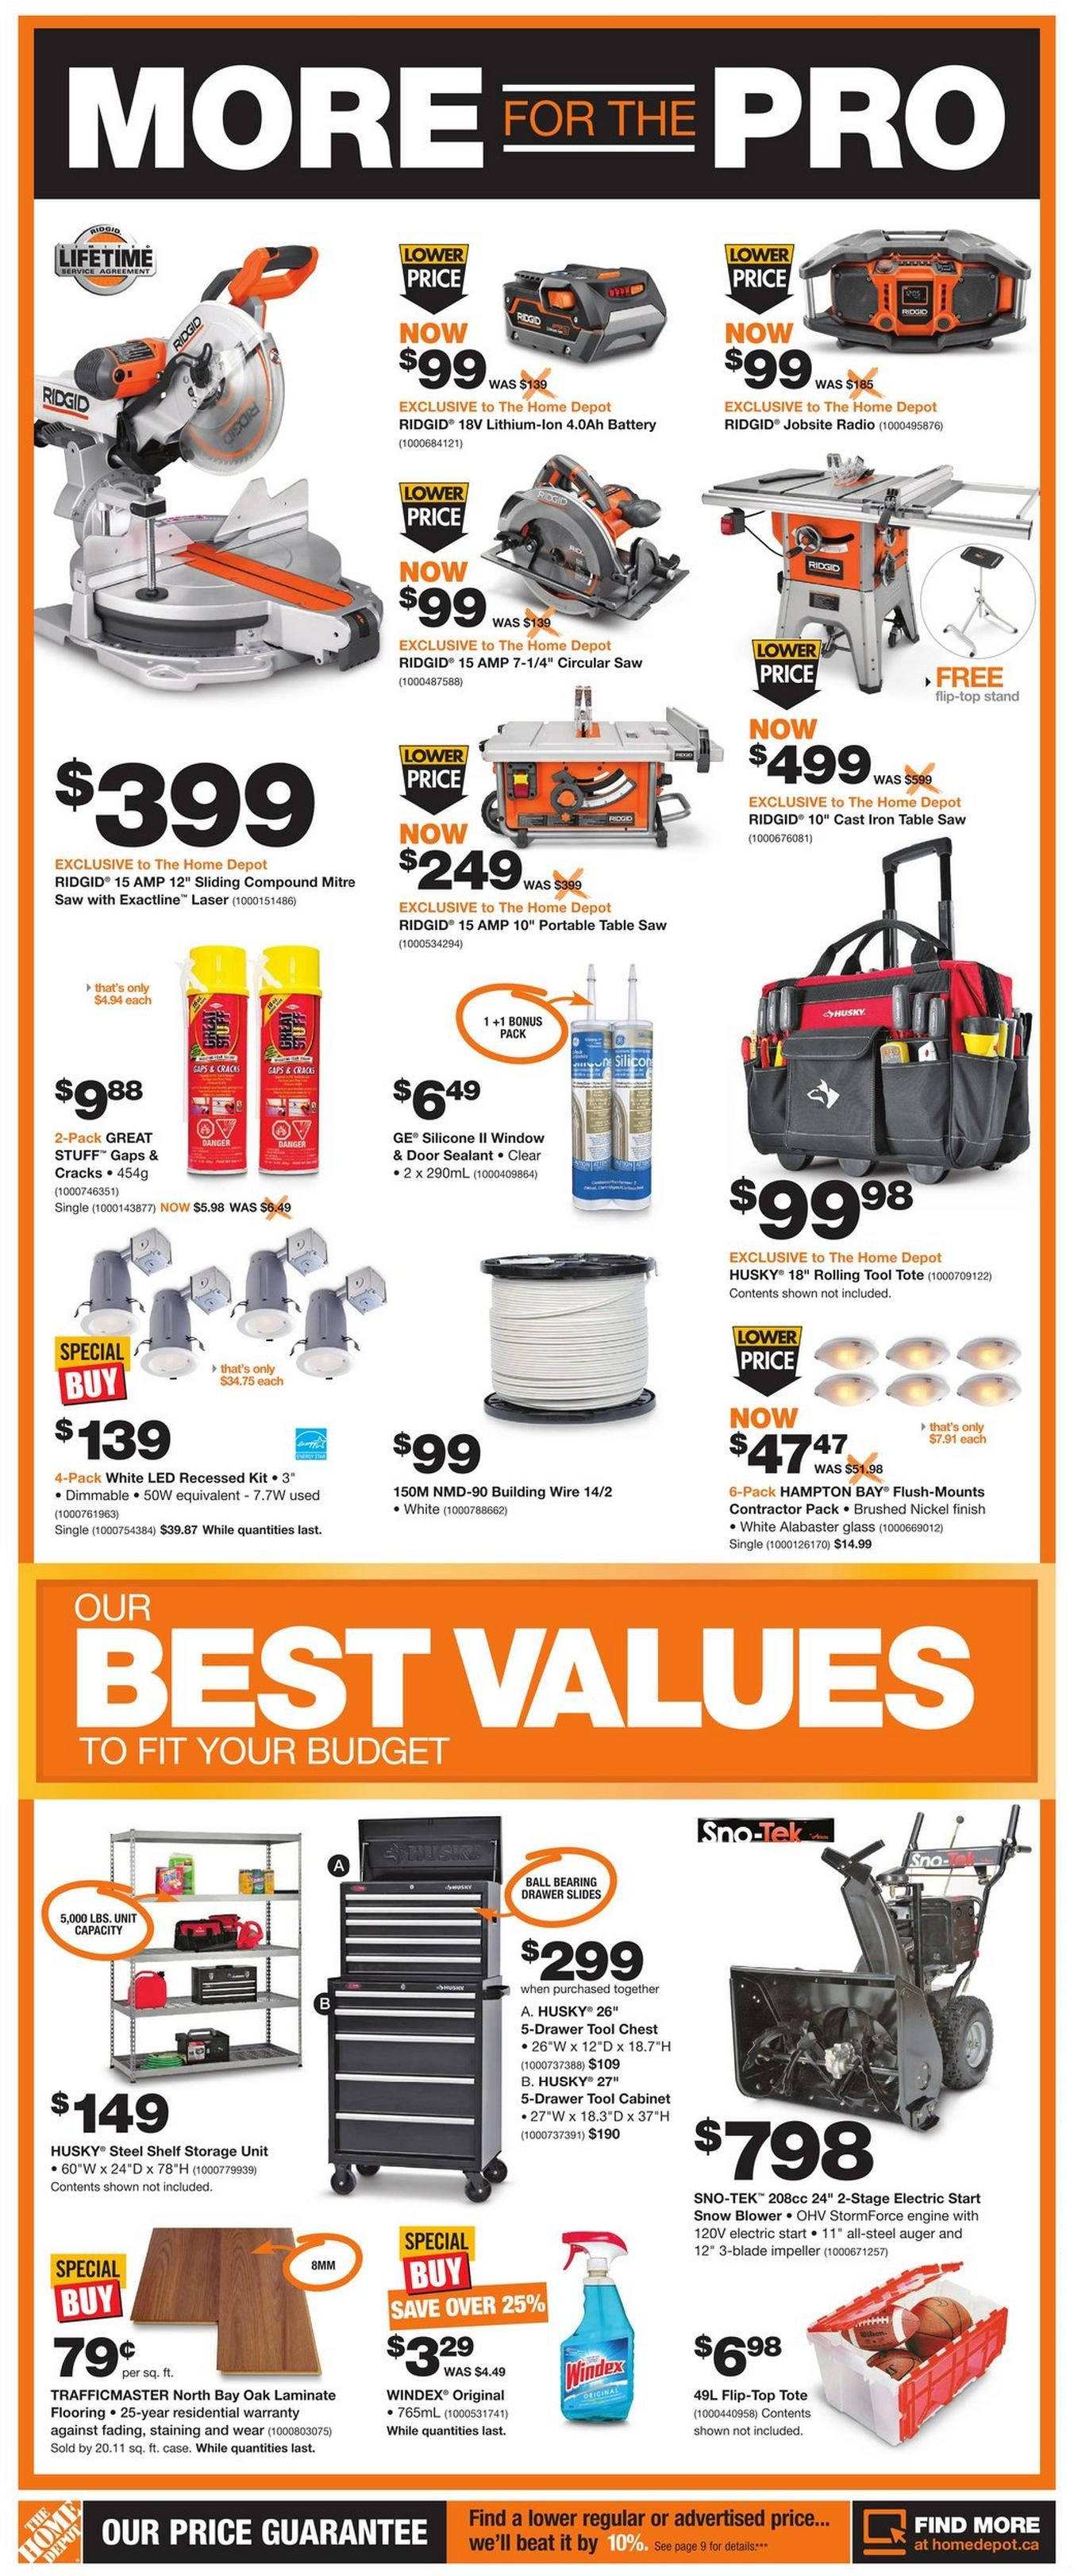 Bathroom Renovation Cost Redflagdeals home depot weekly flyer - fall into savings - oct 16 – 22